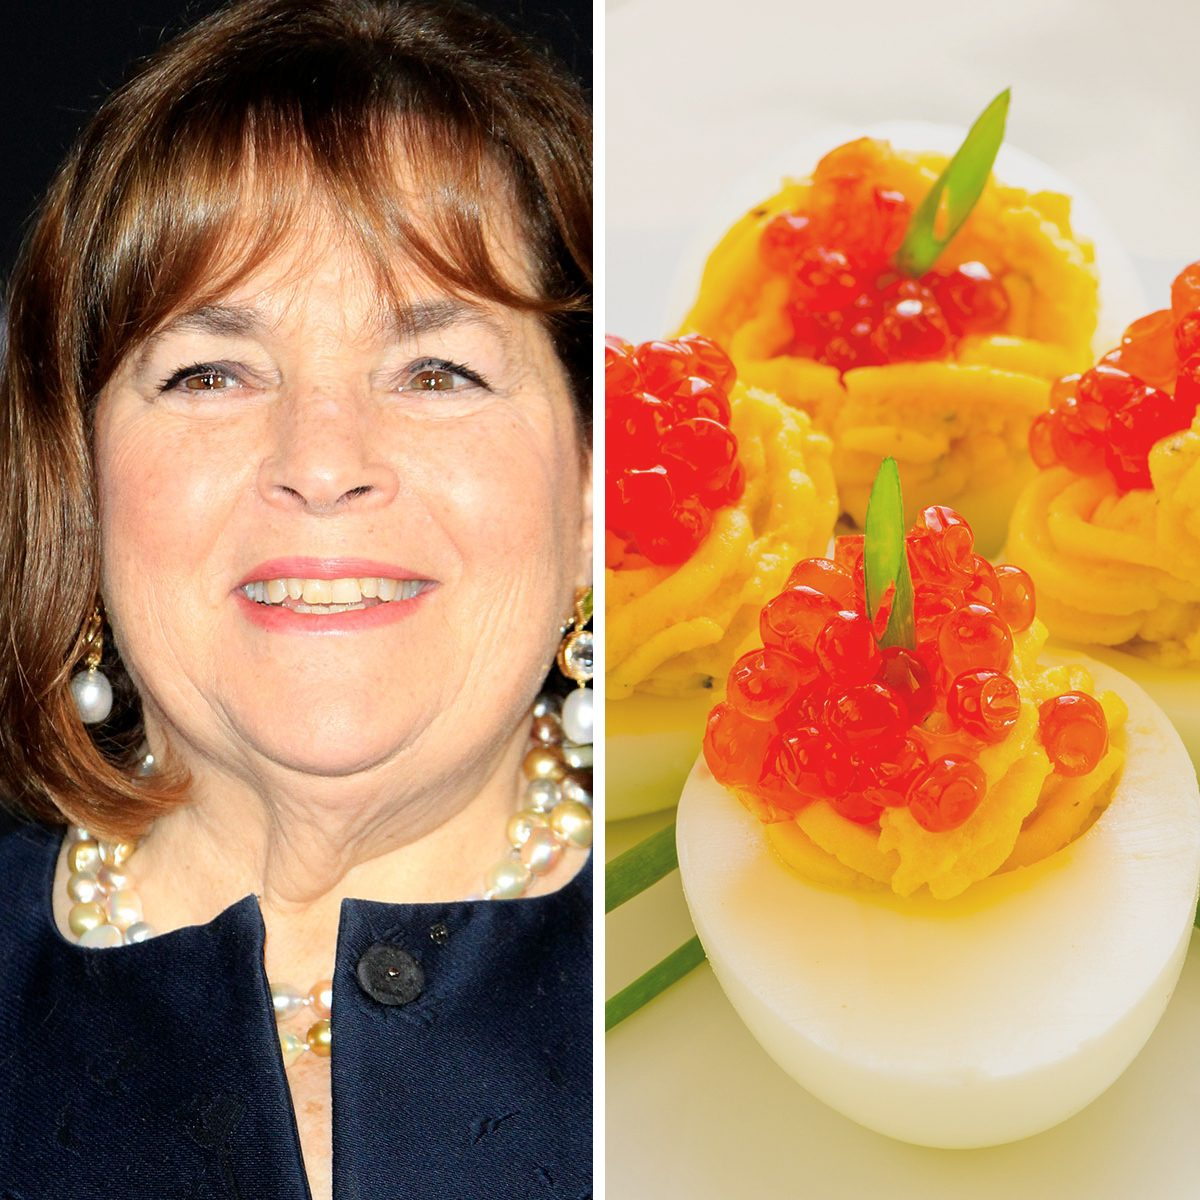 """LOS ANGELES - NOV 29: Ina Garten at the """"Mary Poppins Returns"""" Premiere at the El Capitan Theatre on November 29, 2018 in Los Angeles, CA; Shutterstock ID 1245232378; Job (TFH, TOH, RD, BNB, CWM, CM): TOH Deviled eggs with red caviar; Shutterstock ID 116142838; Job (TFH, TOH, RD, BNB, CWM, CM): TOH"""